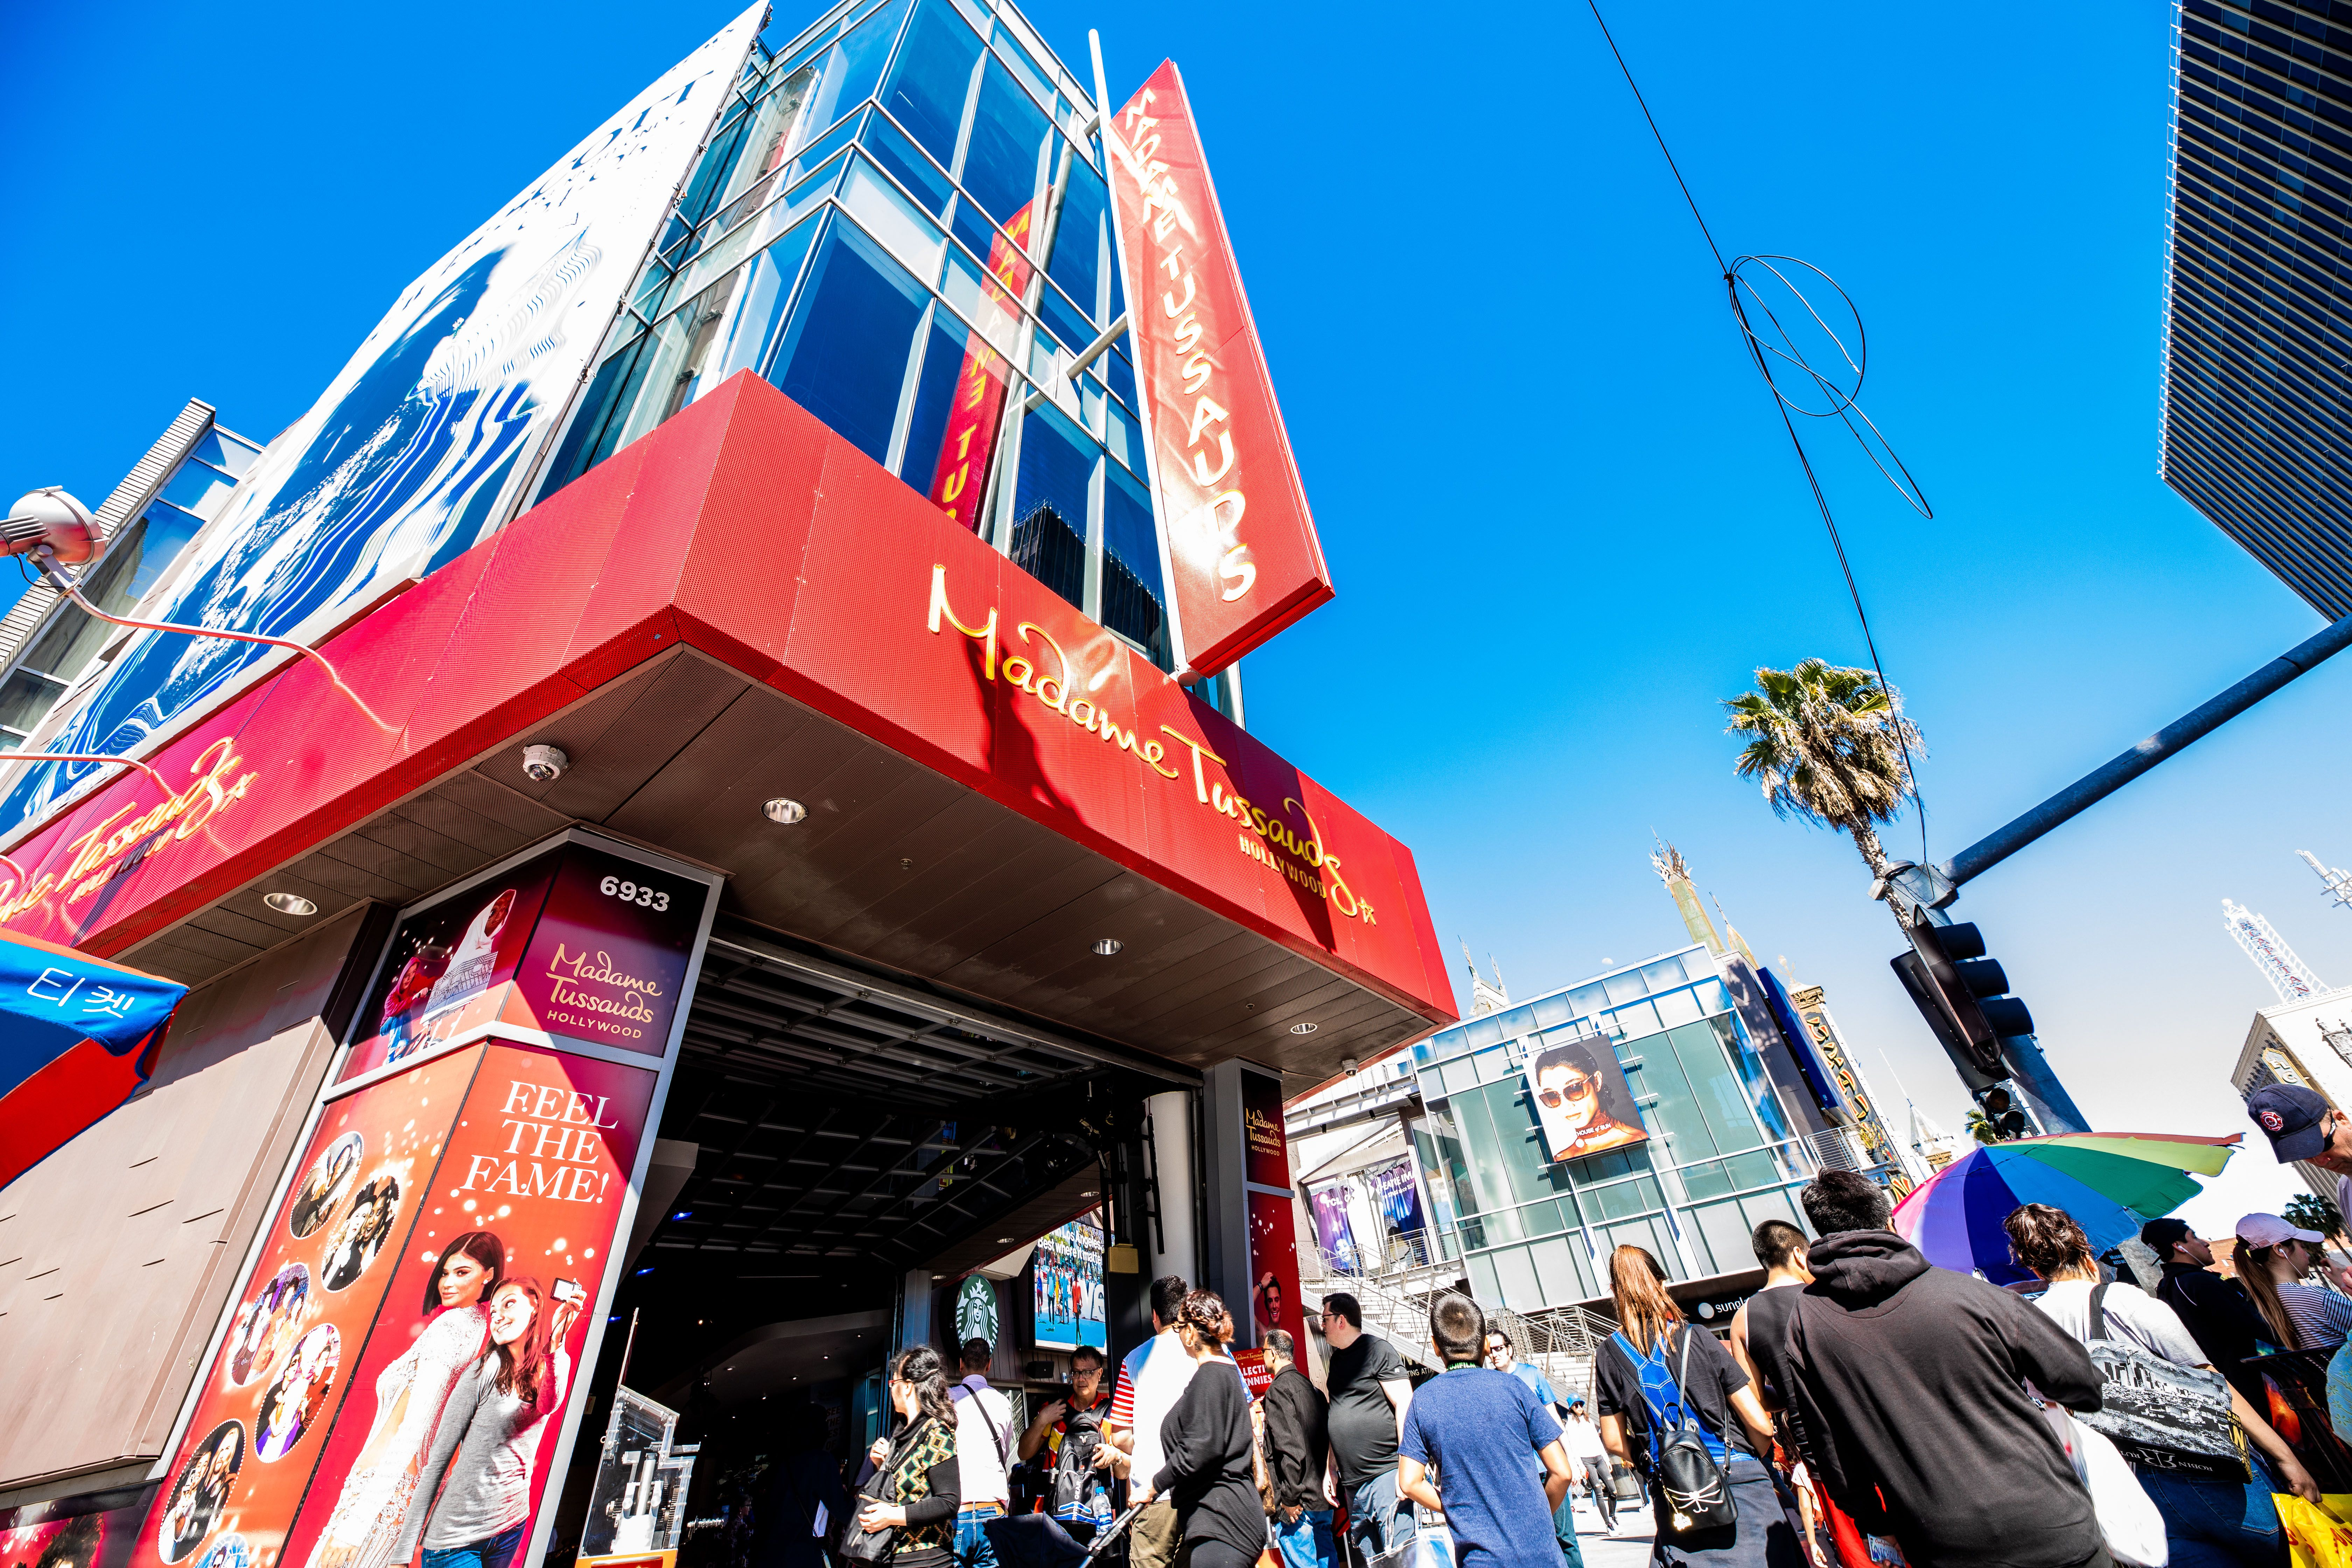 Exterior of the Madame Tussaud's